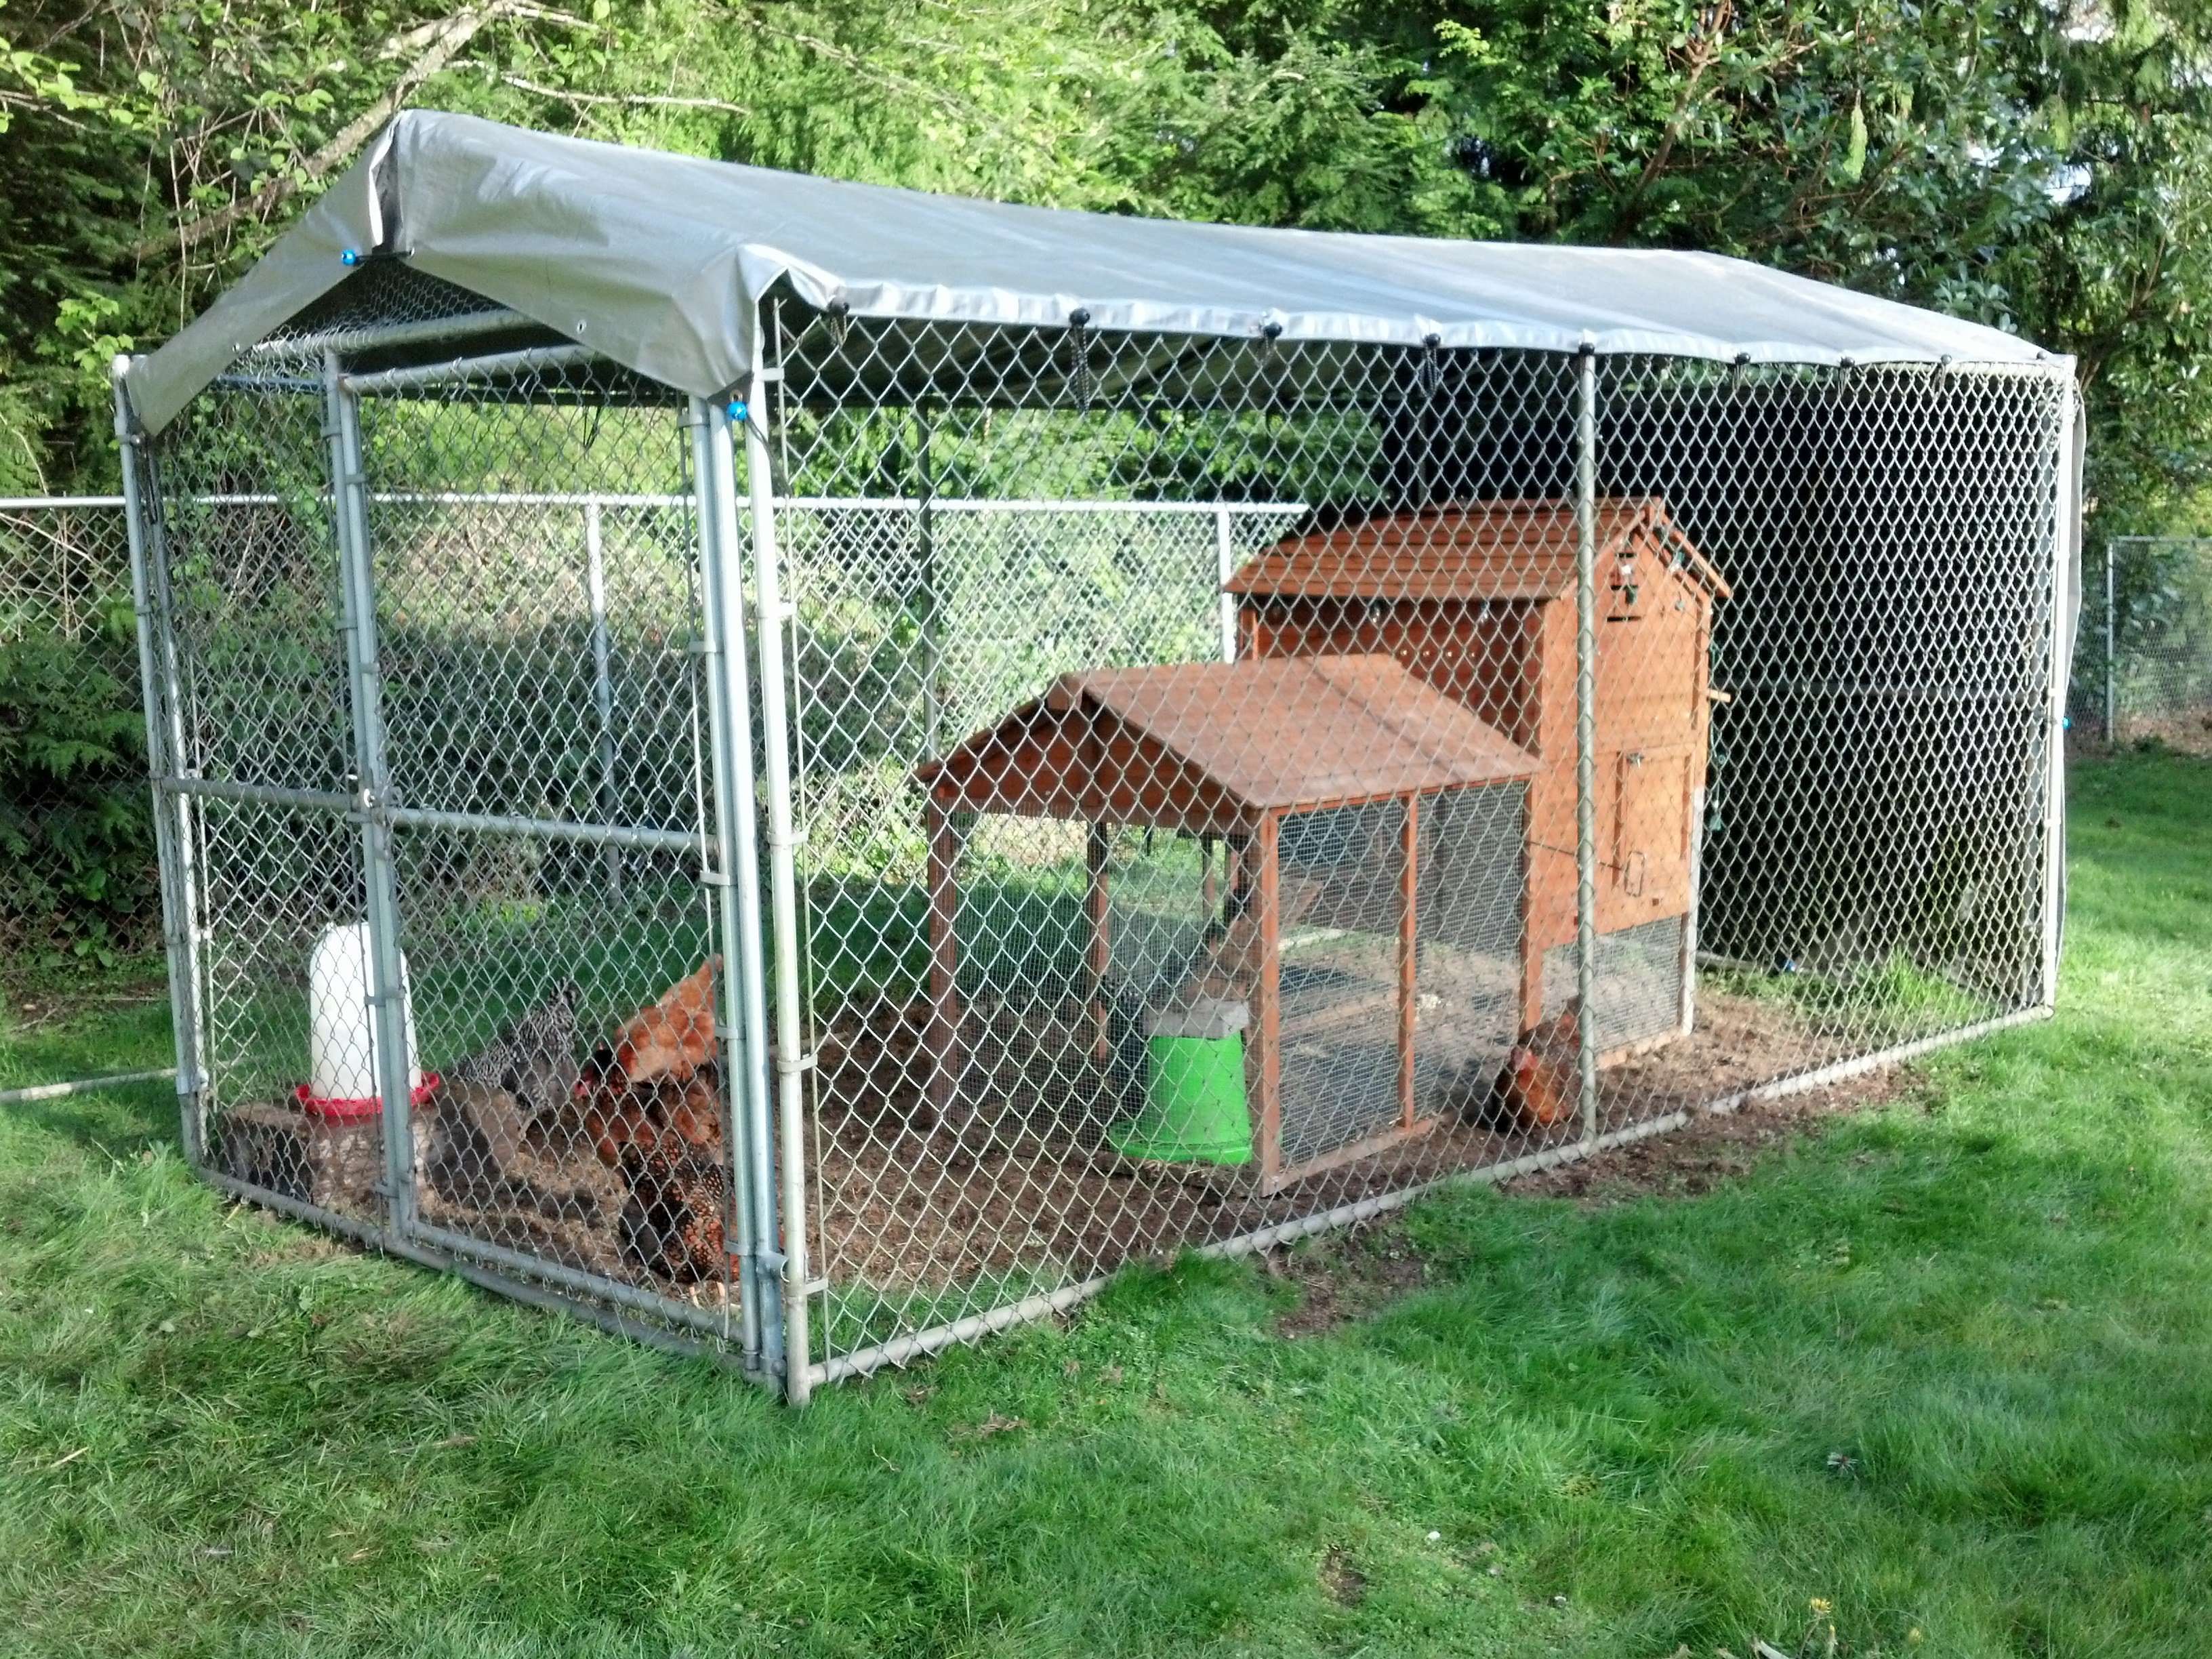 New Chicken Palance Inside The 7 X14 Predator Proof Coop Chicken Wire Hand Sewed Over The Front And Rear Door Areas Chainmail Buried Under The Walls Of The Coop Backyard Chickens